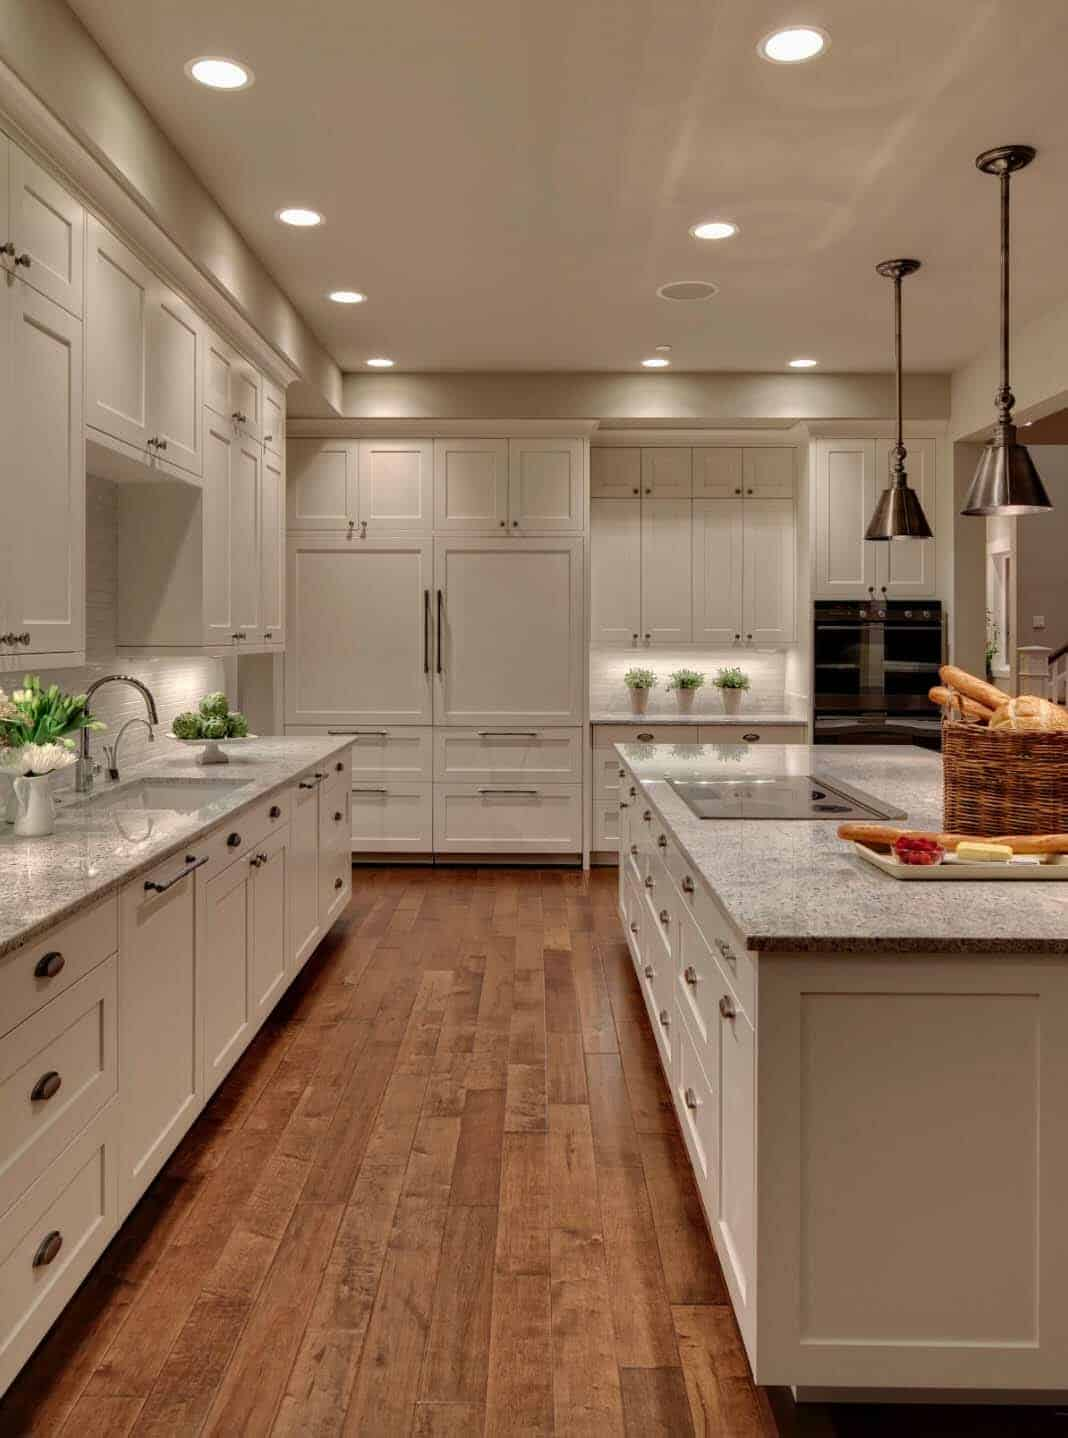 30 Beautiful And Inspiring Light Filled Kitchens With White Countertops